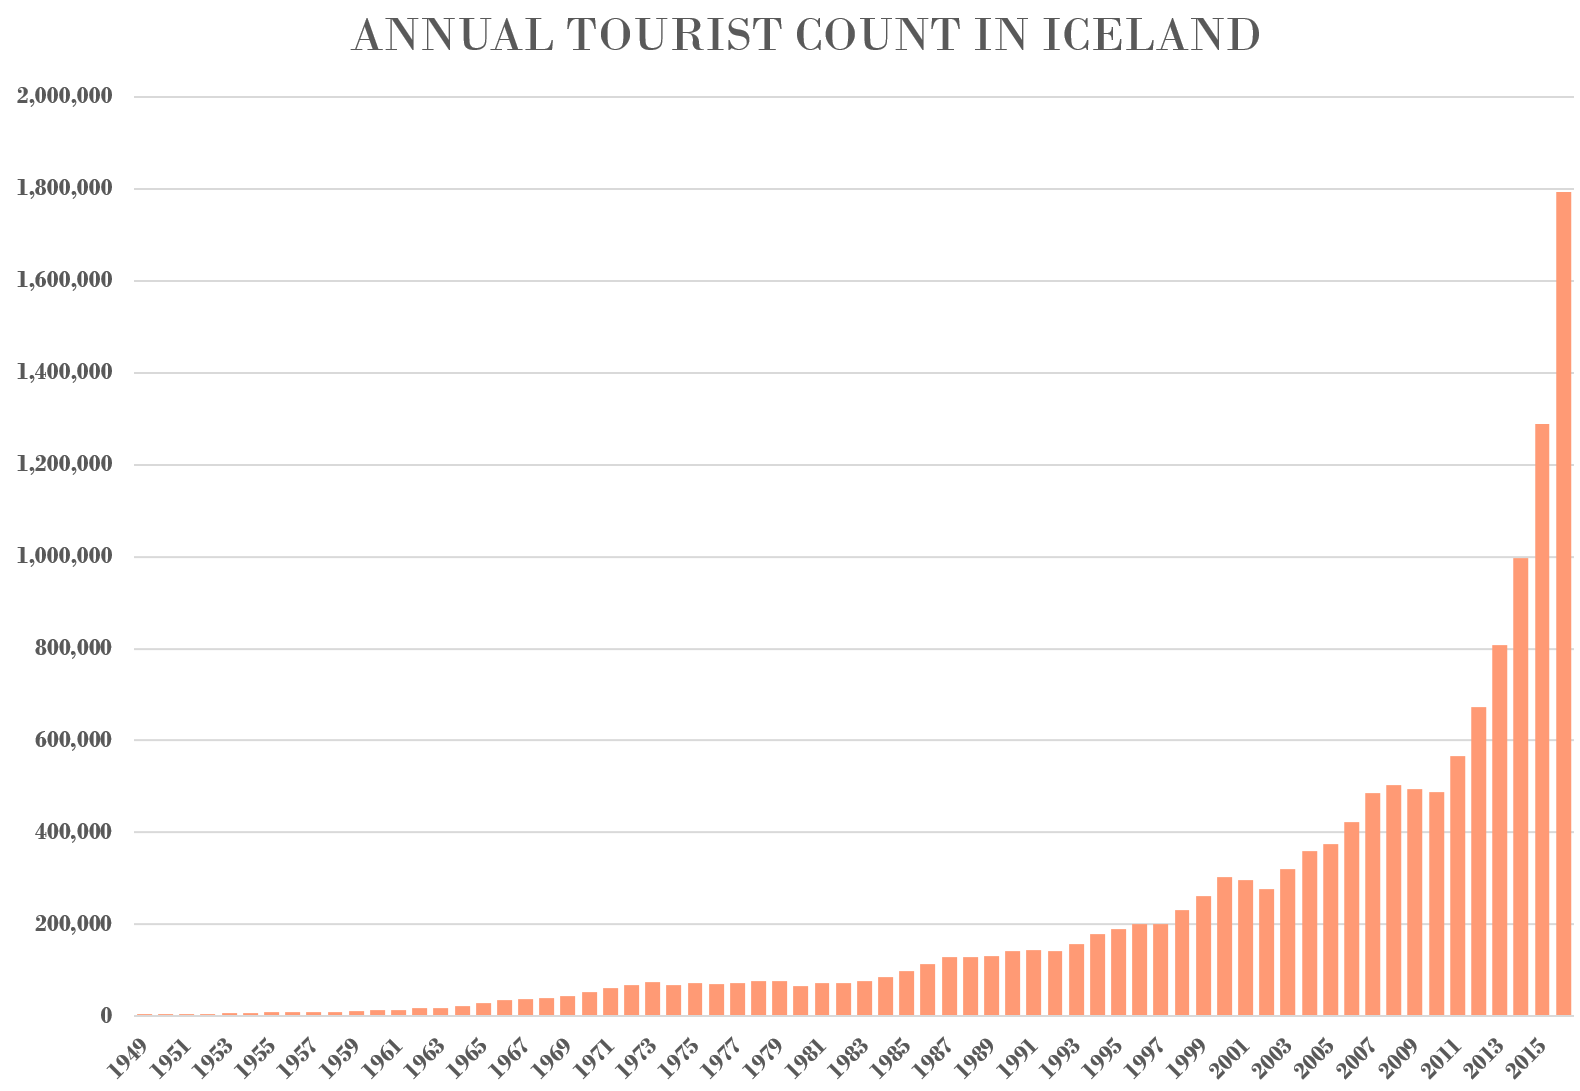 Research from the Icelandic Tourist Board |  Tourism in Iceland in Figures